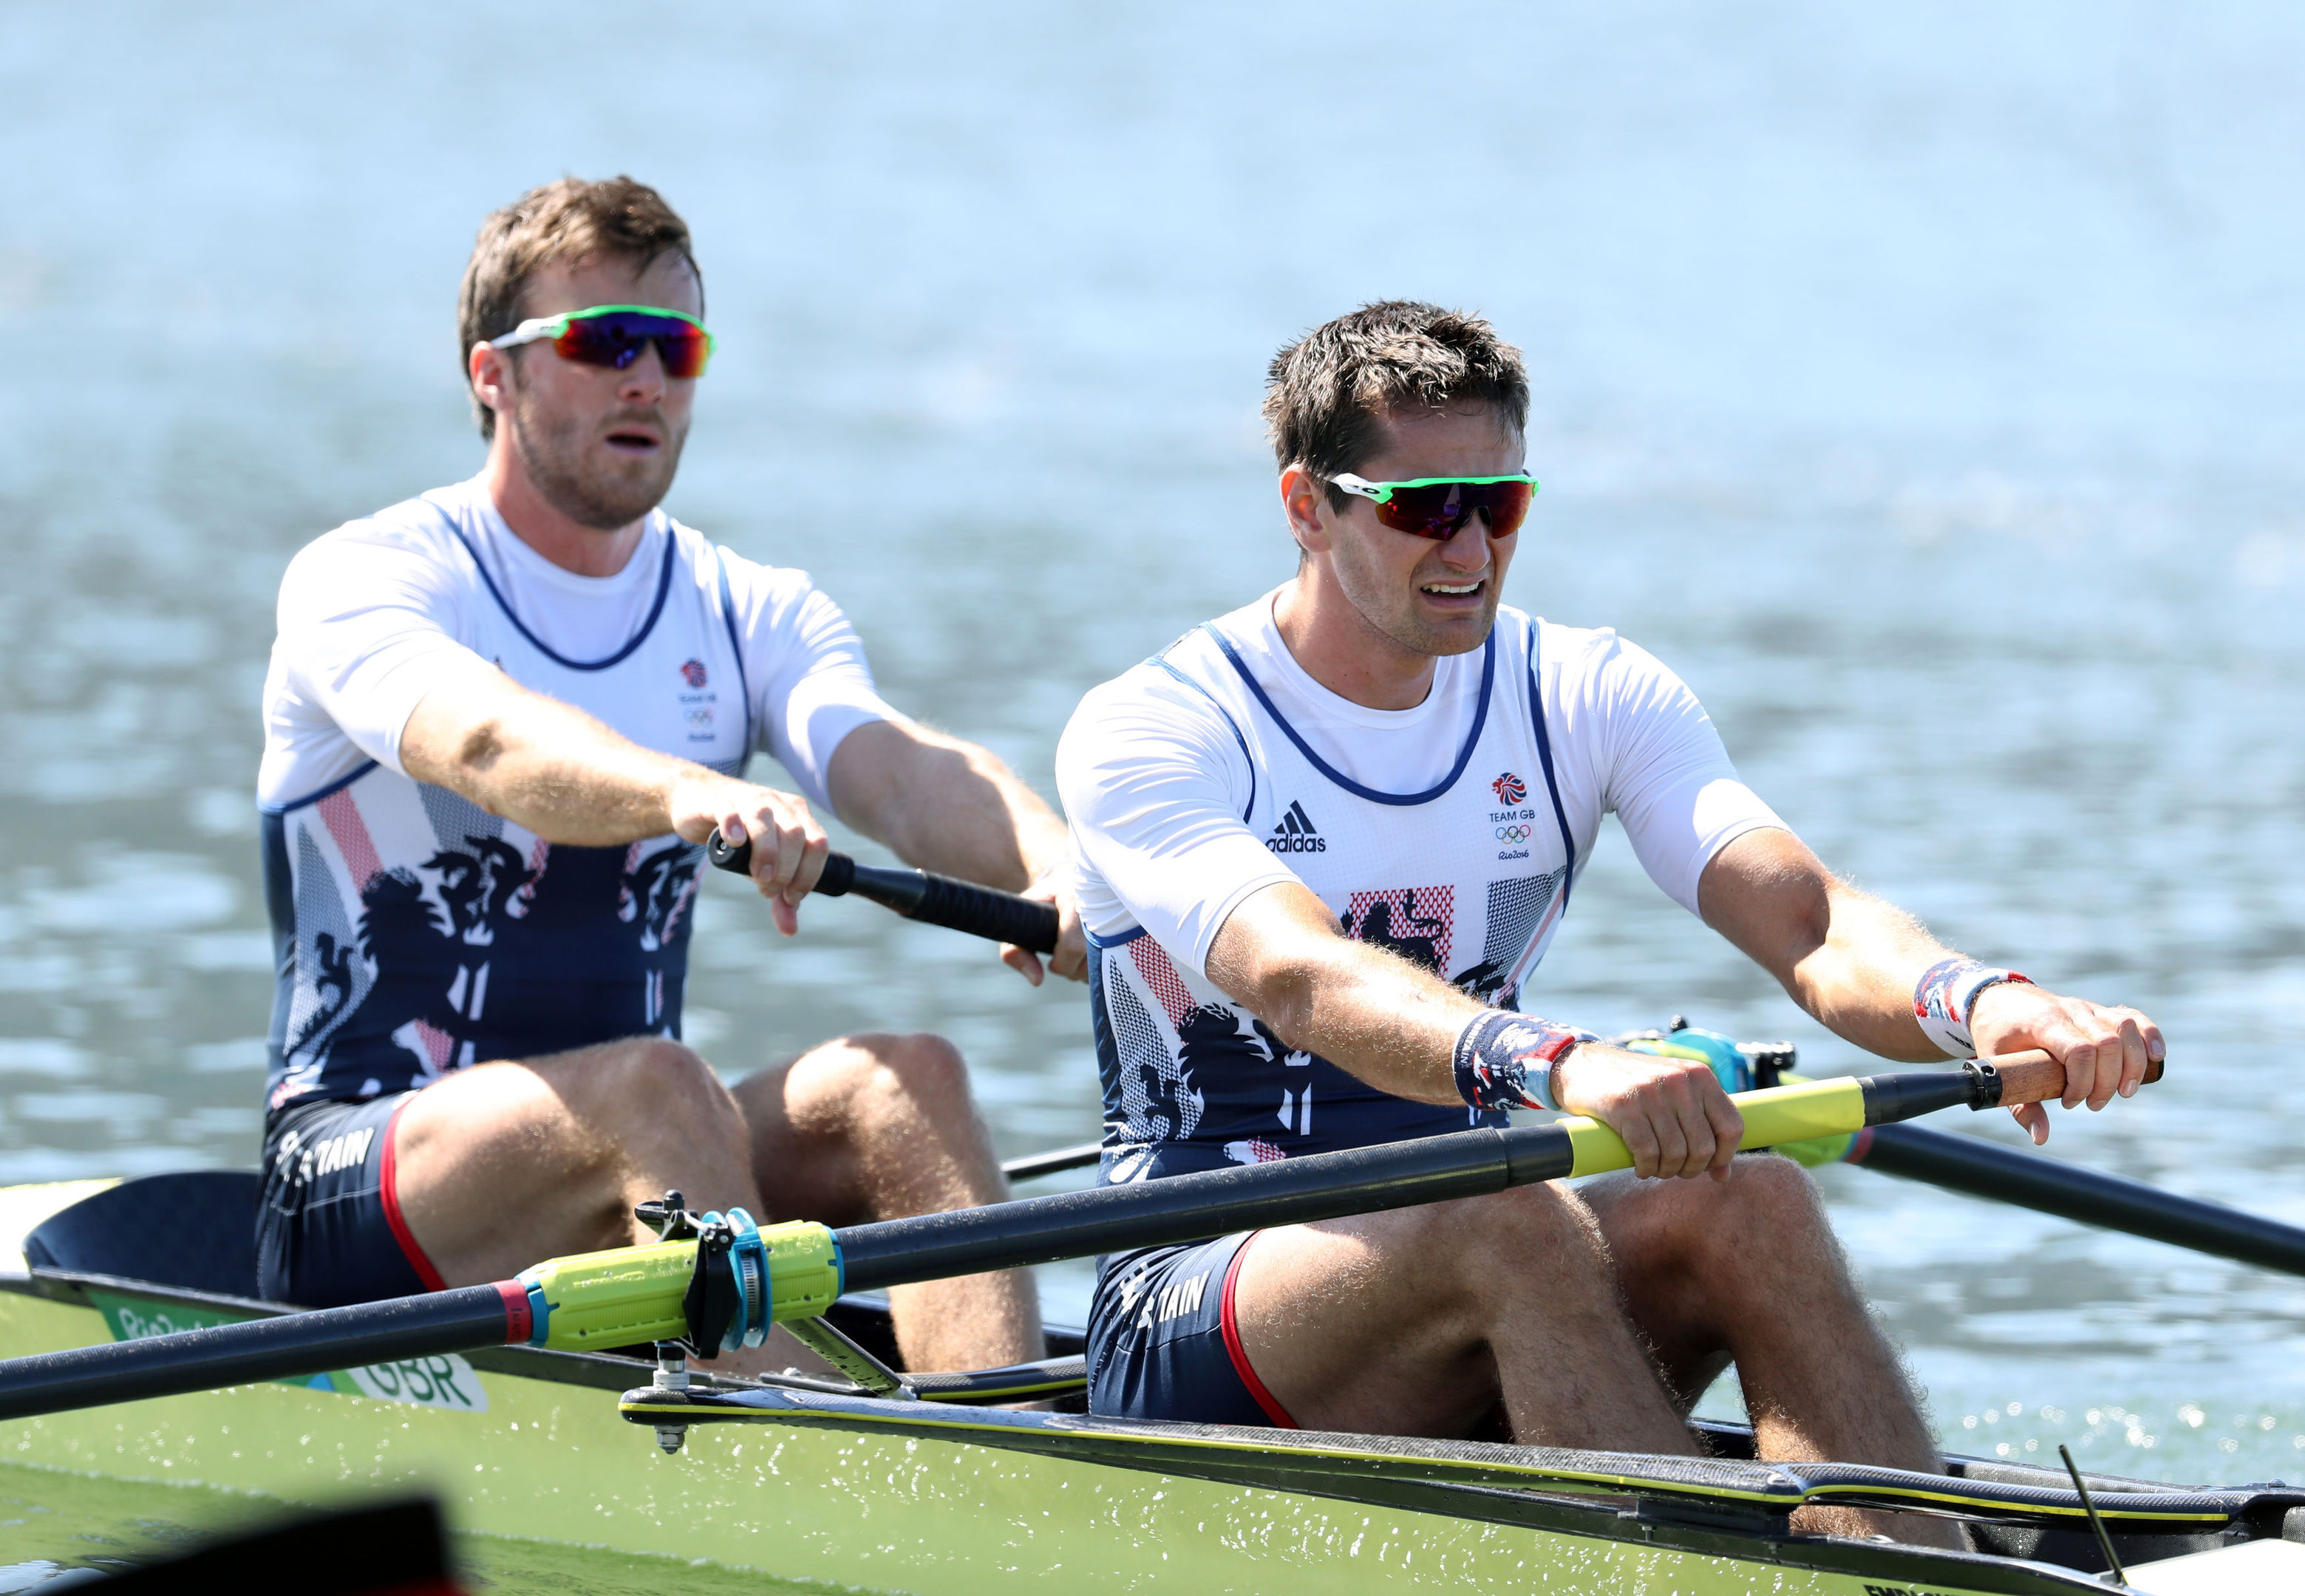 Alan Sinclair (left) rows with Stewart Innes at the 2016 Olympics.